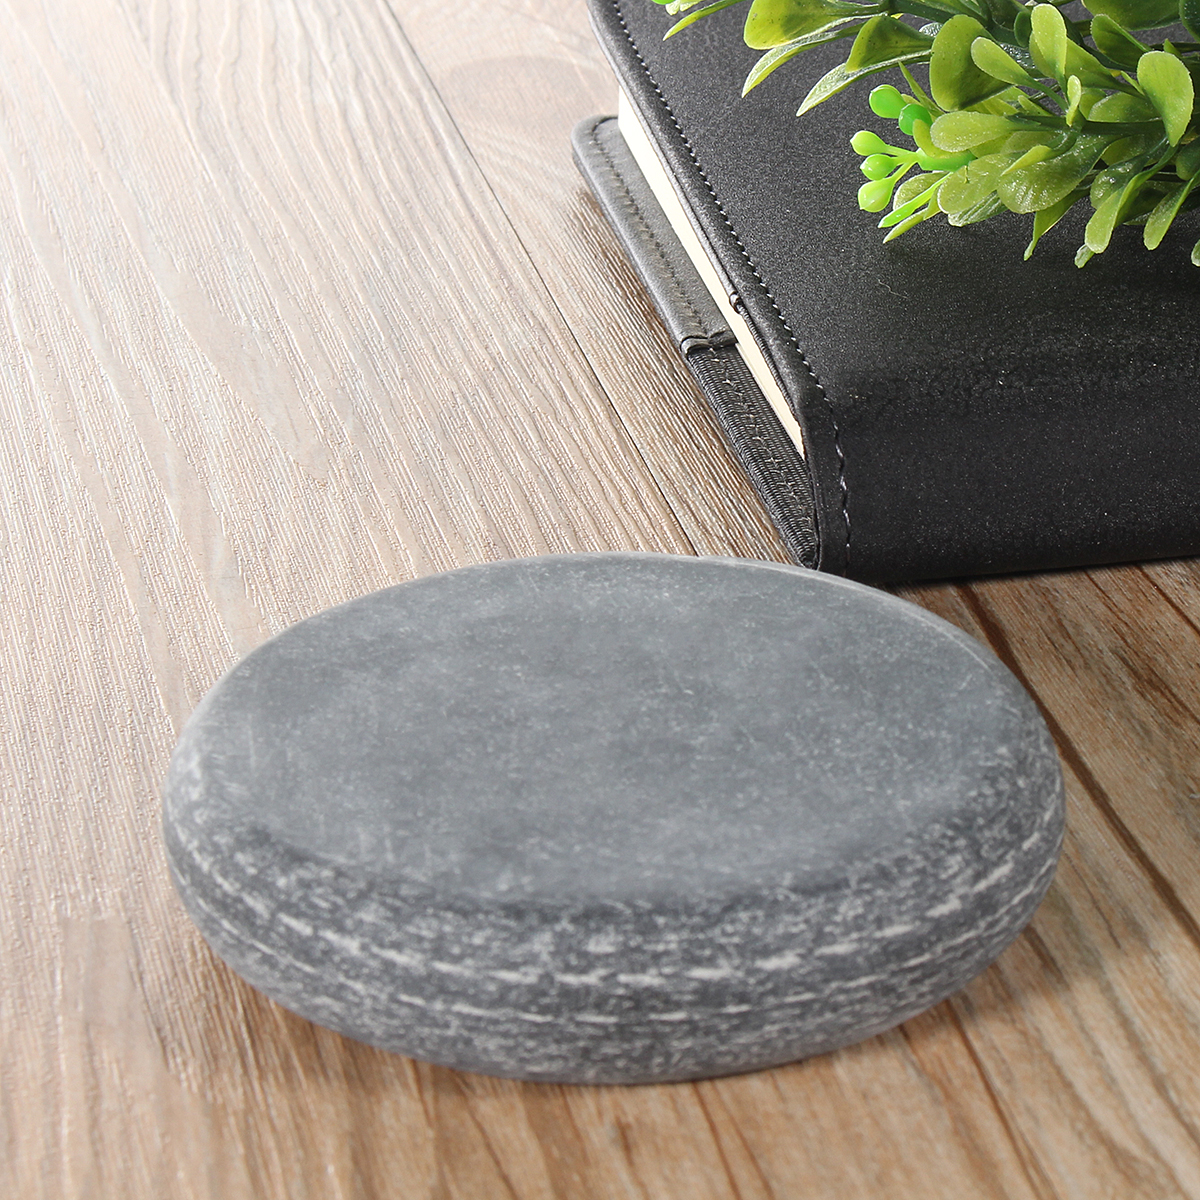 4 Pcs Hot Spa Rock Basalt Stone Stones Massage Lava Natural Stone